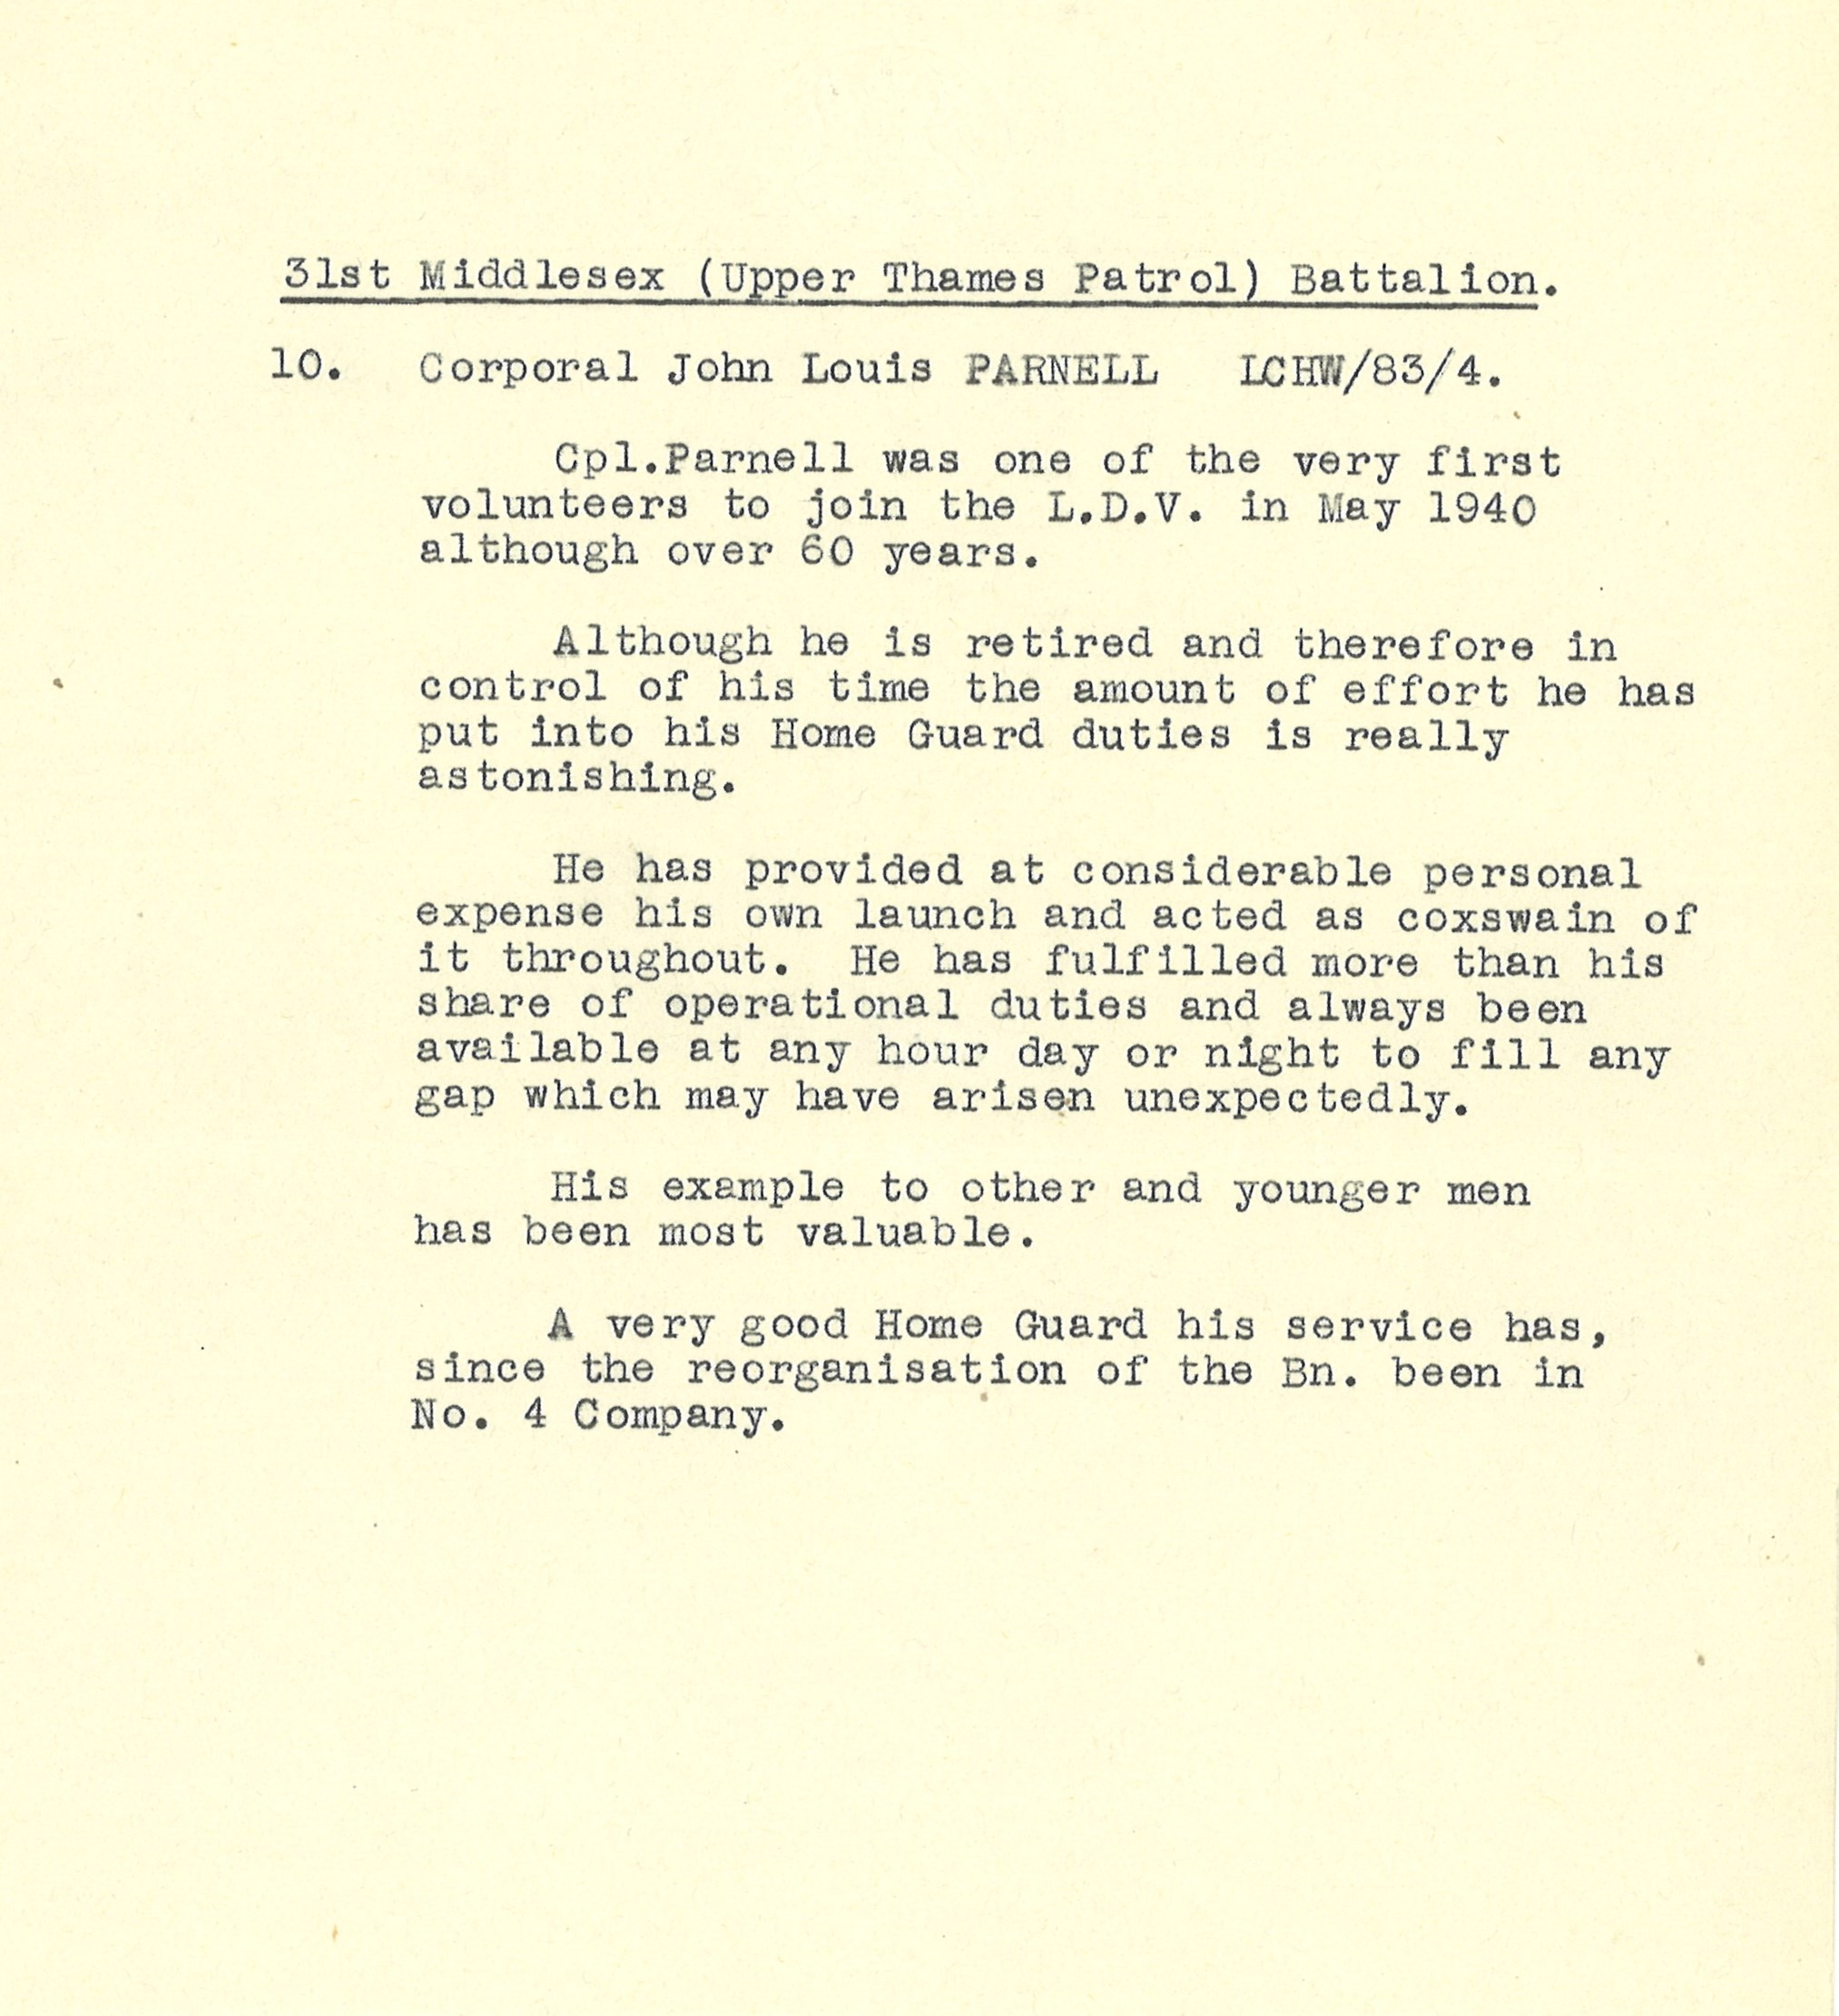 Typewritten recommendation for Corporal John Louis Parnell